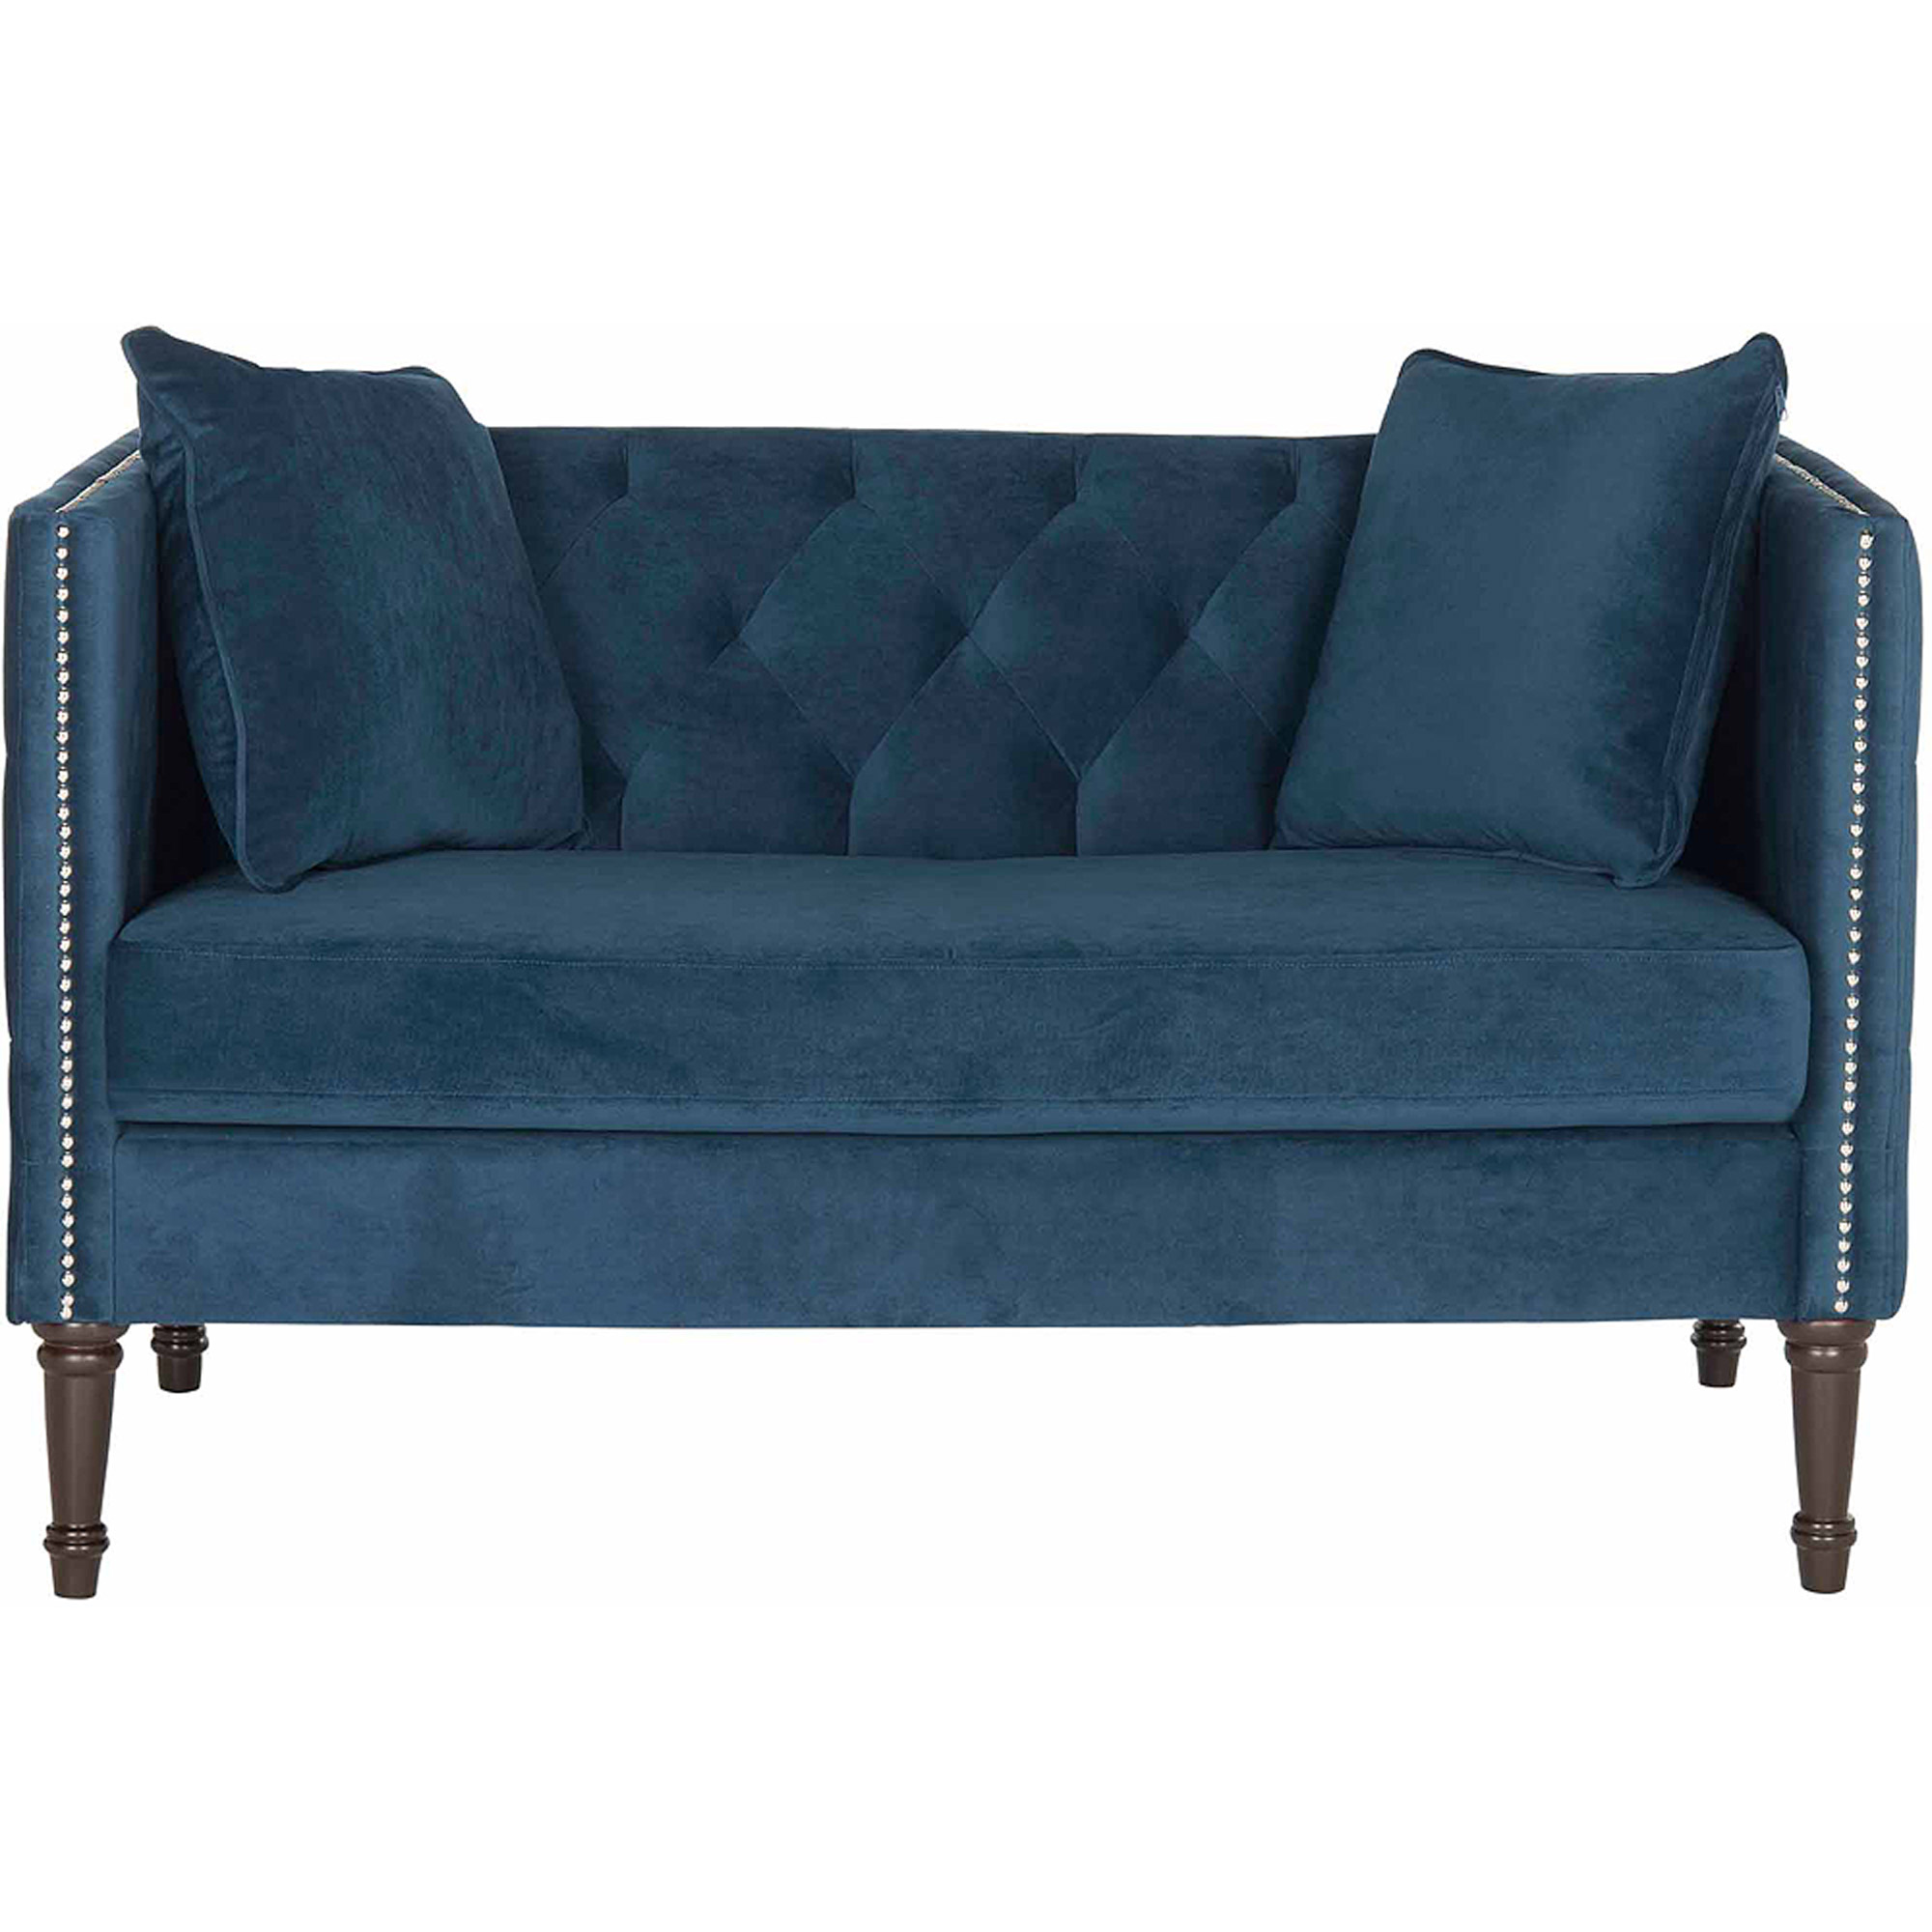 "Safavieh 53"" Sarah Tufted Settee with Pillows, Multiple Colors by Safavieh"